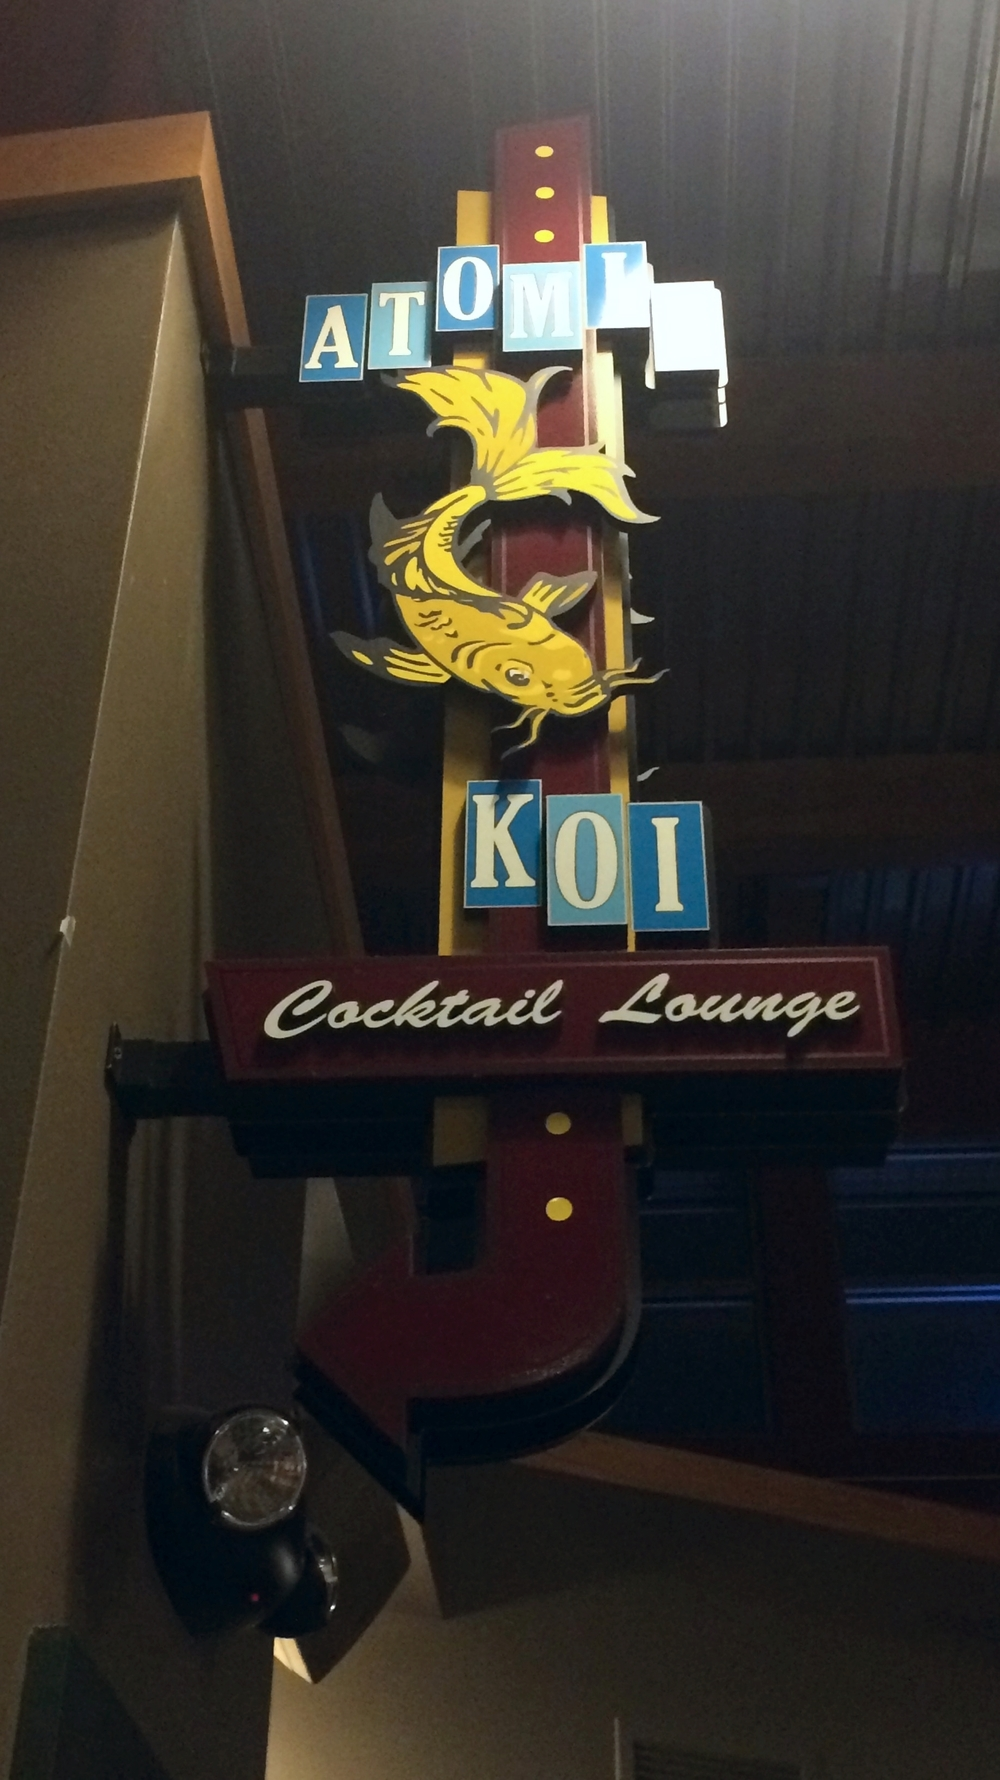 Atomic Koi sign                                                                                 Photo by Lynne Everson